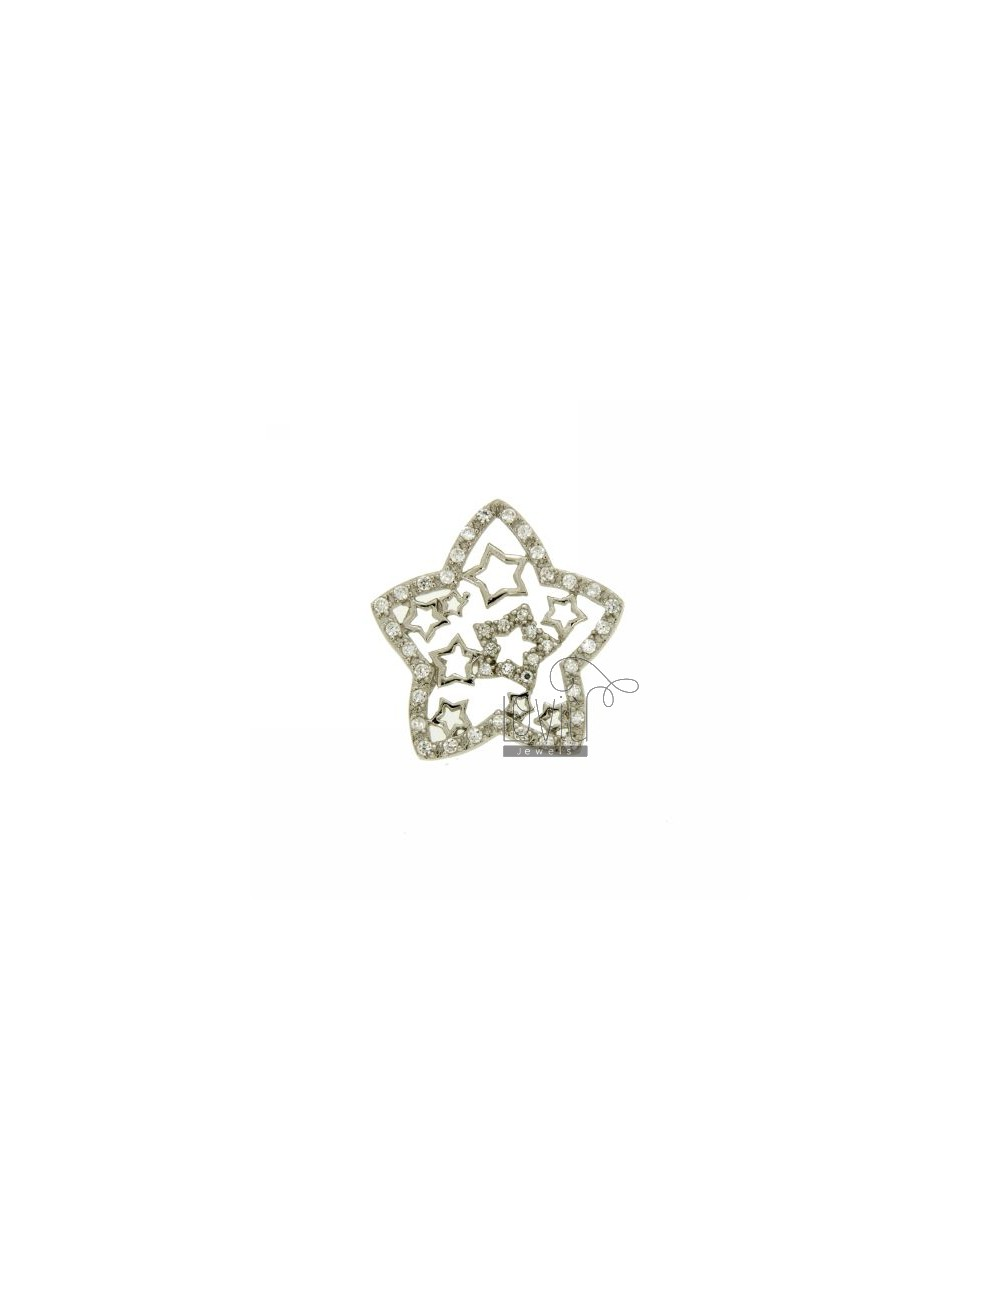 CHARM STAR THROUGH MM 27X27 IN AG TIT 925 ‰ AND ZIRCONIA